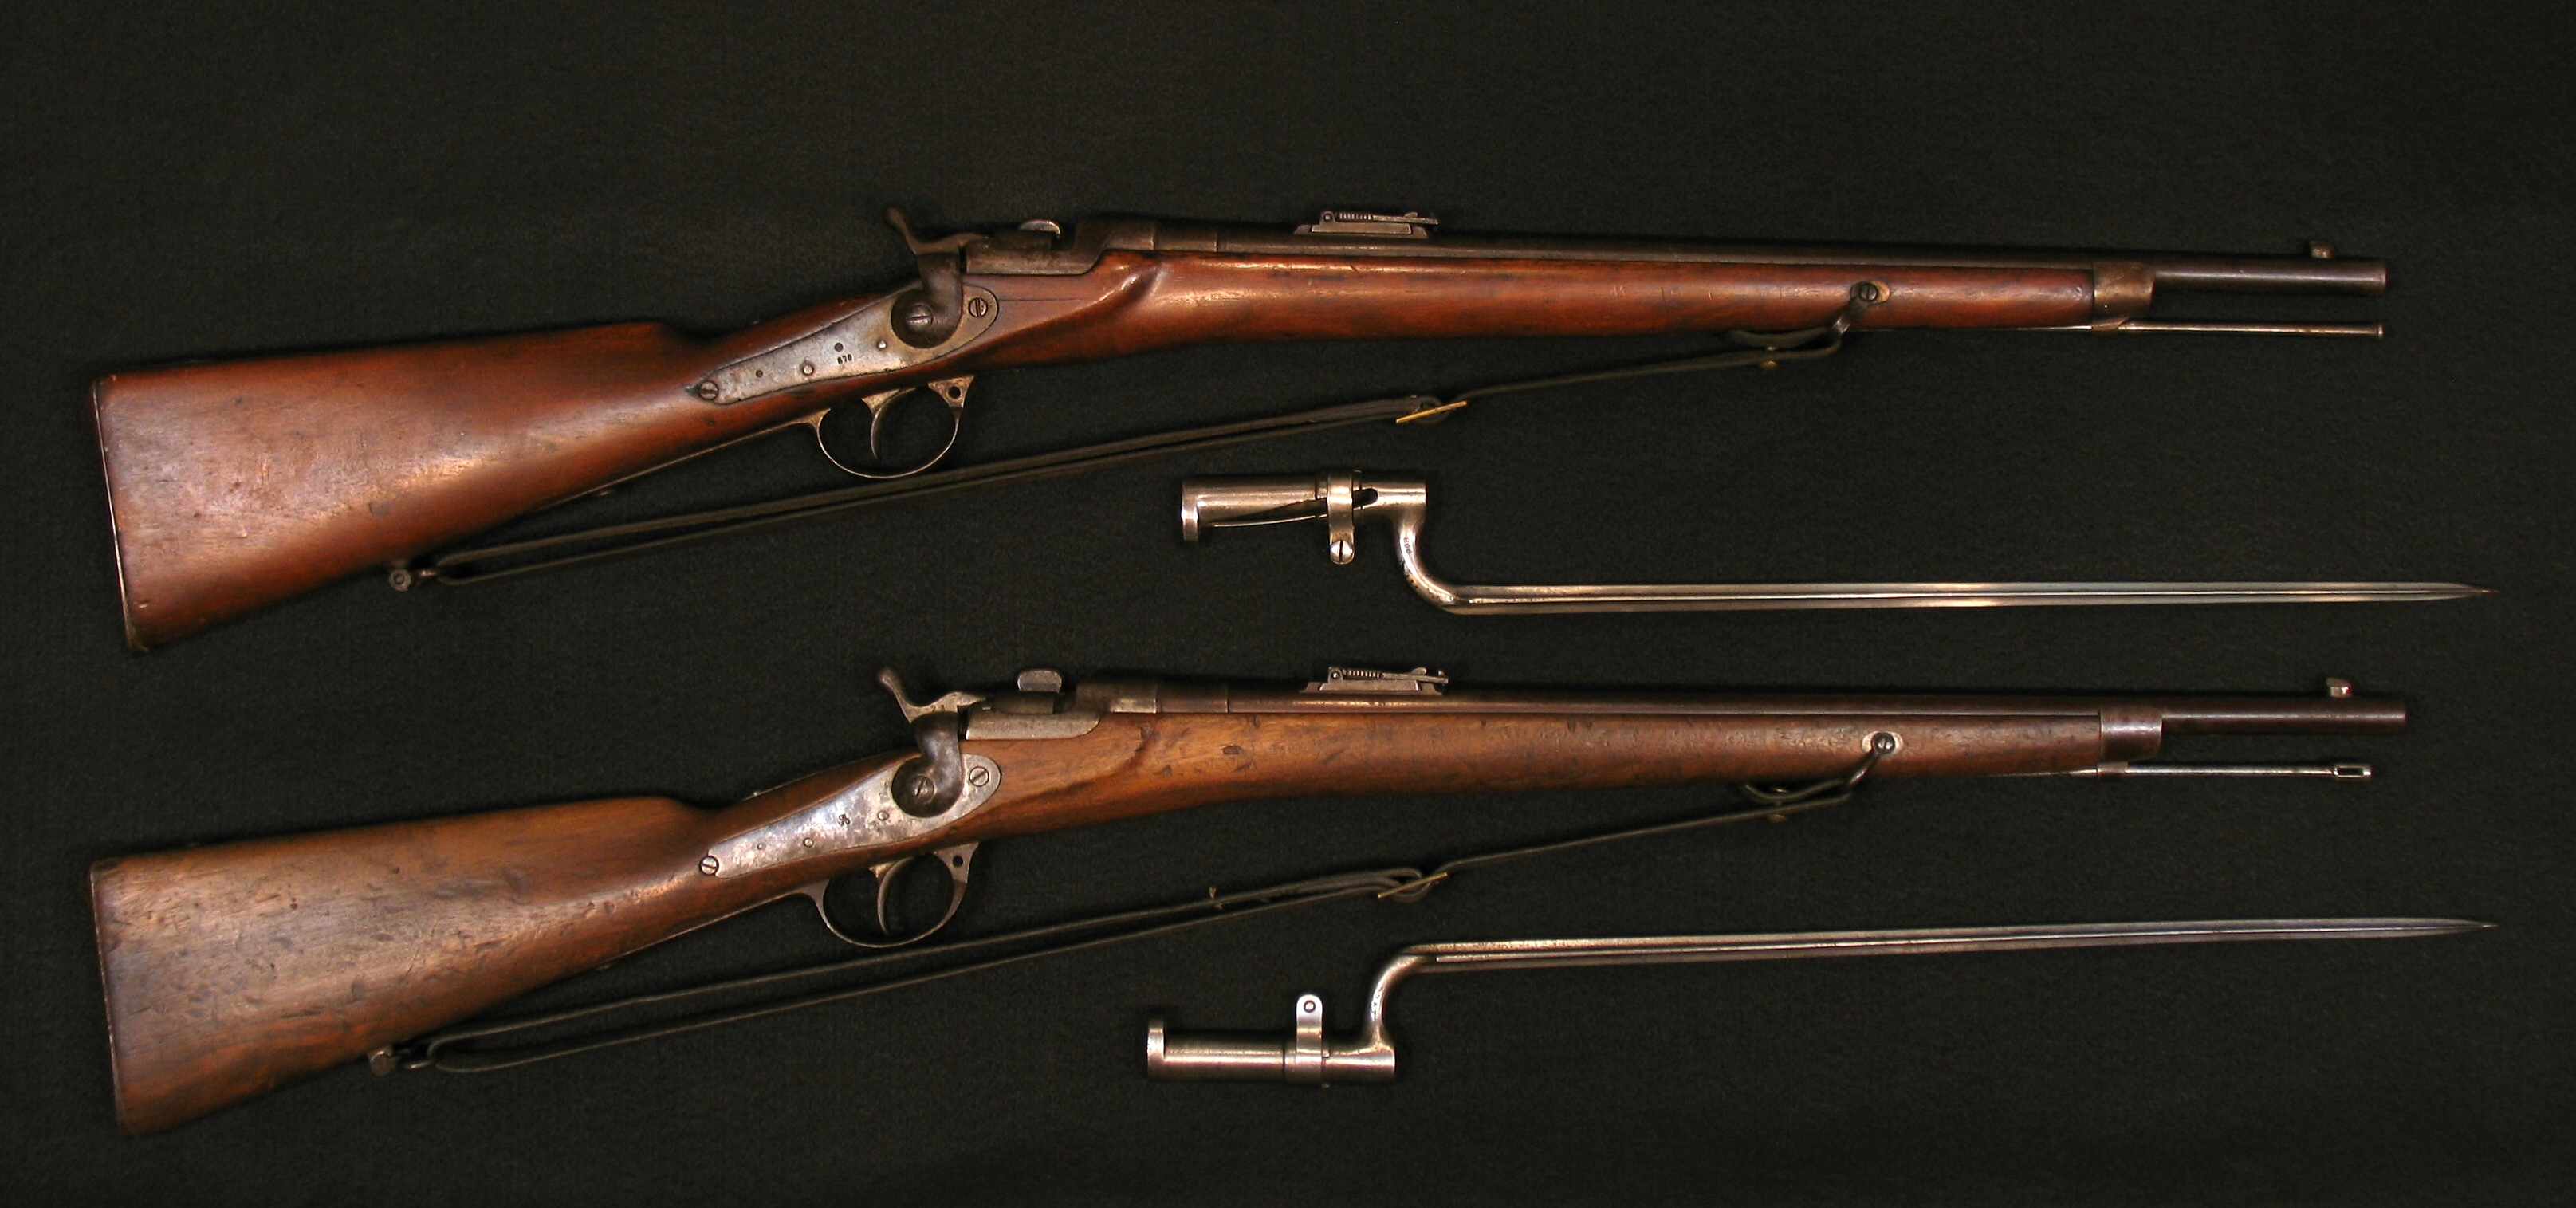 Click image for larger version.  Name:Werndl Carbines 67 E-K-Gew w Bayonets R-4a.jpg Views:1 Size:2.76 MB ID:3708385